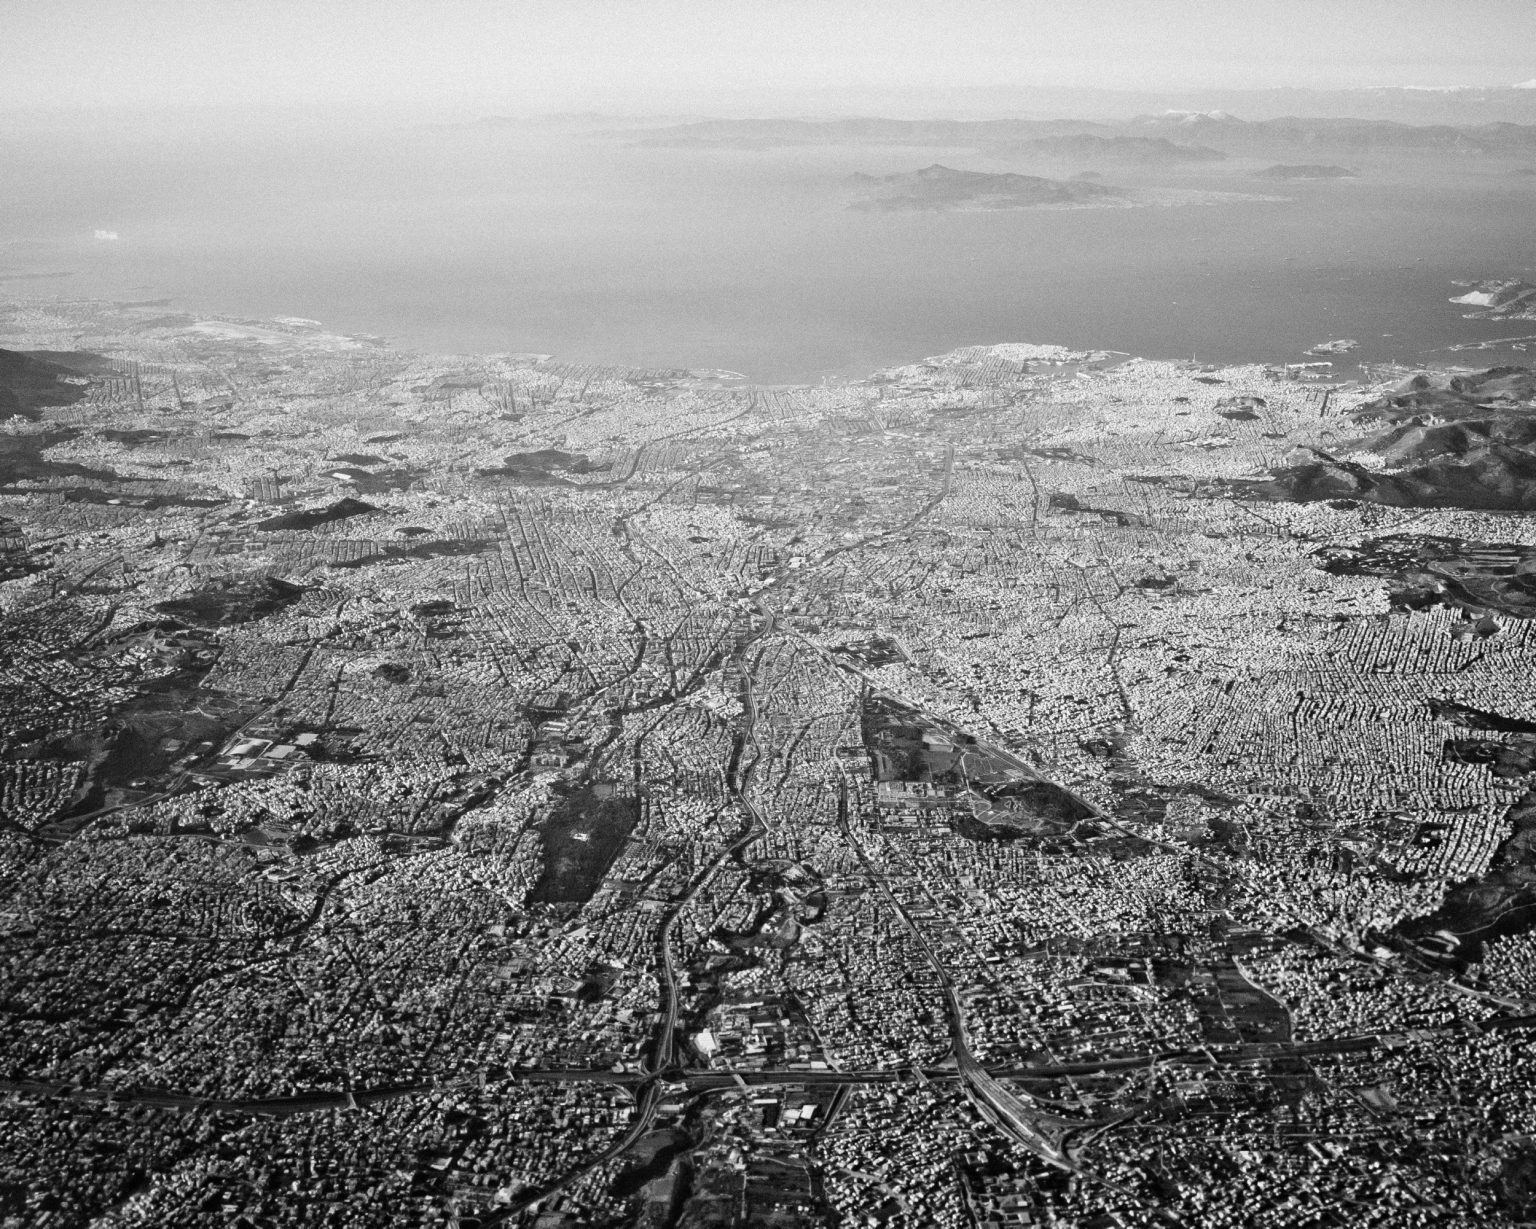 The sprawling Greek capital is home to nearly half of the country's crisis-stricken population. Athens, Greece, 2011